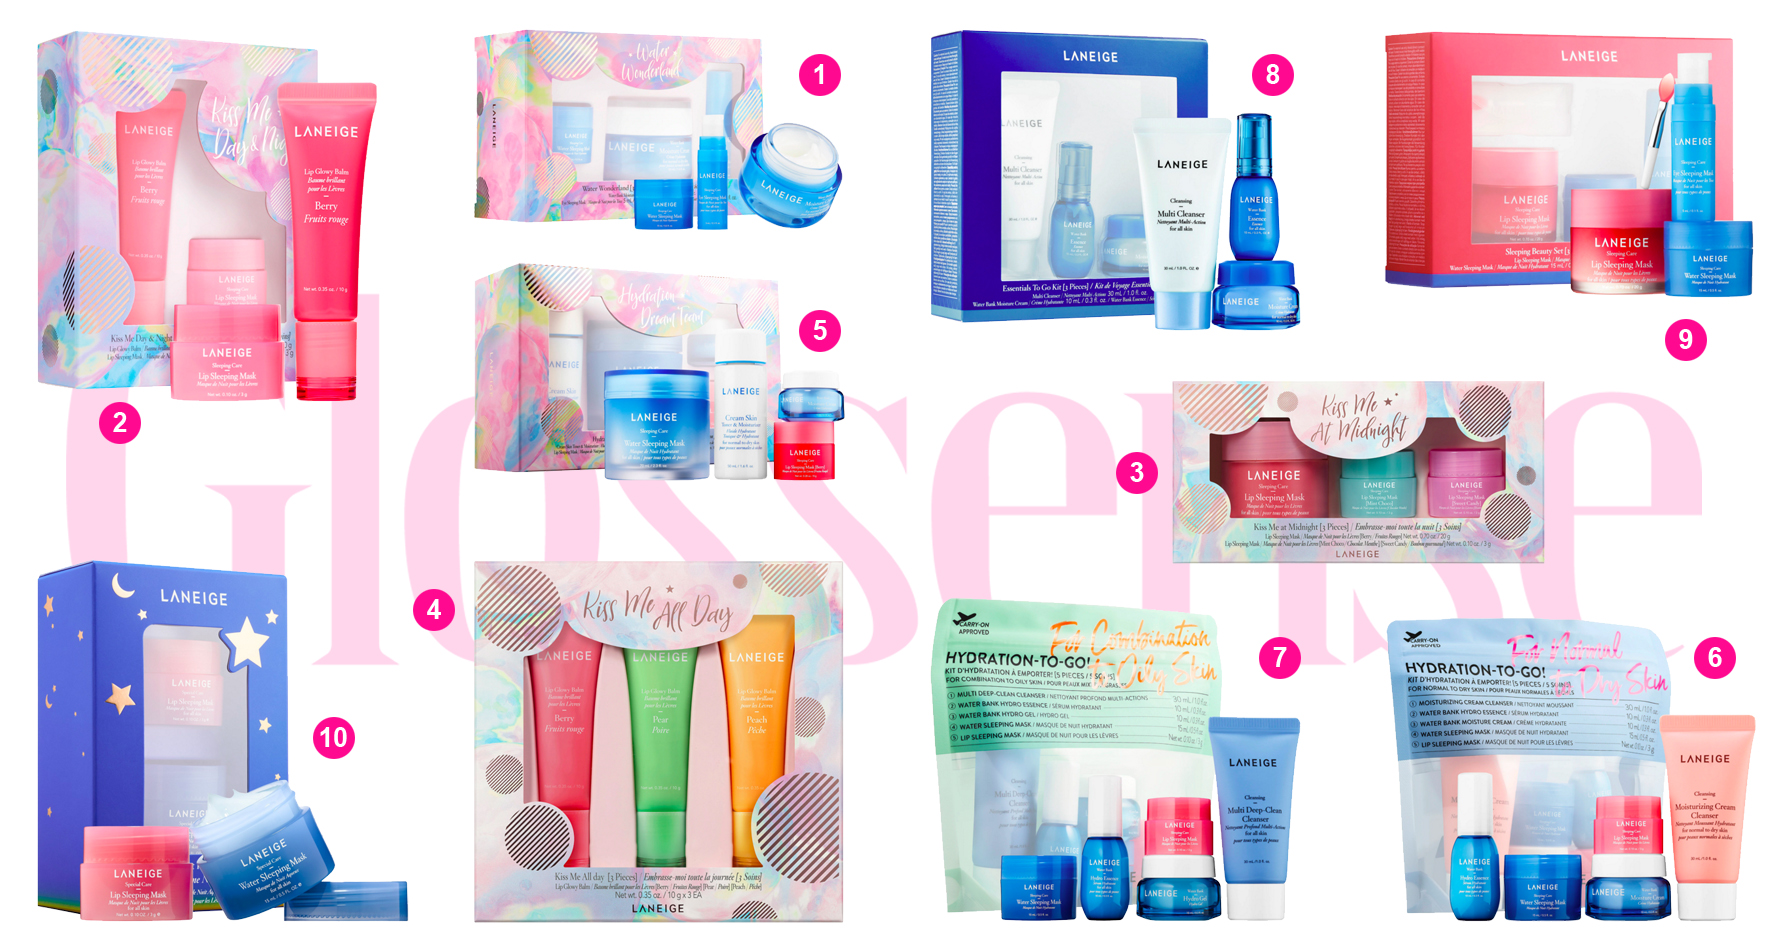 Sephora Canada Laneige 2019 Christmas Holiday Collection Skincare Kiss Me Gift Sets Canadian New Releases Gift Ideas